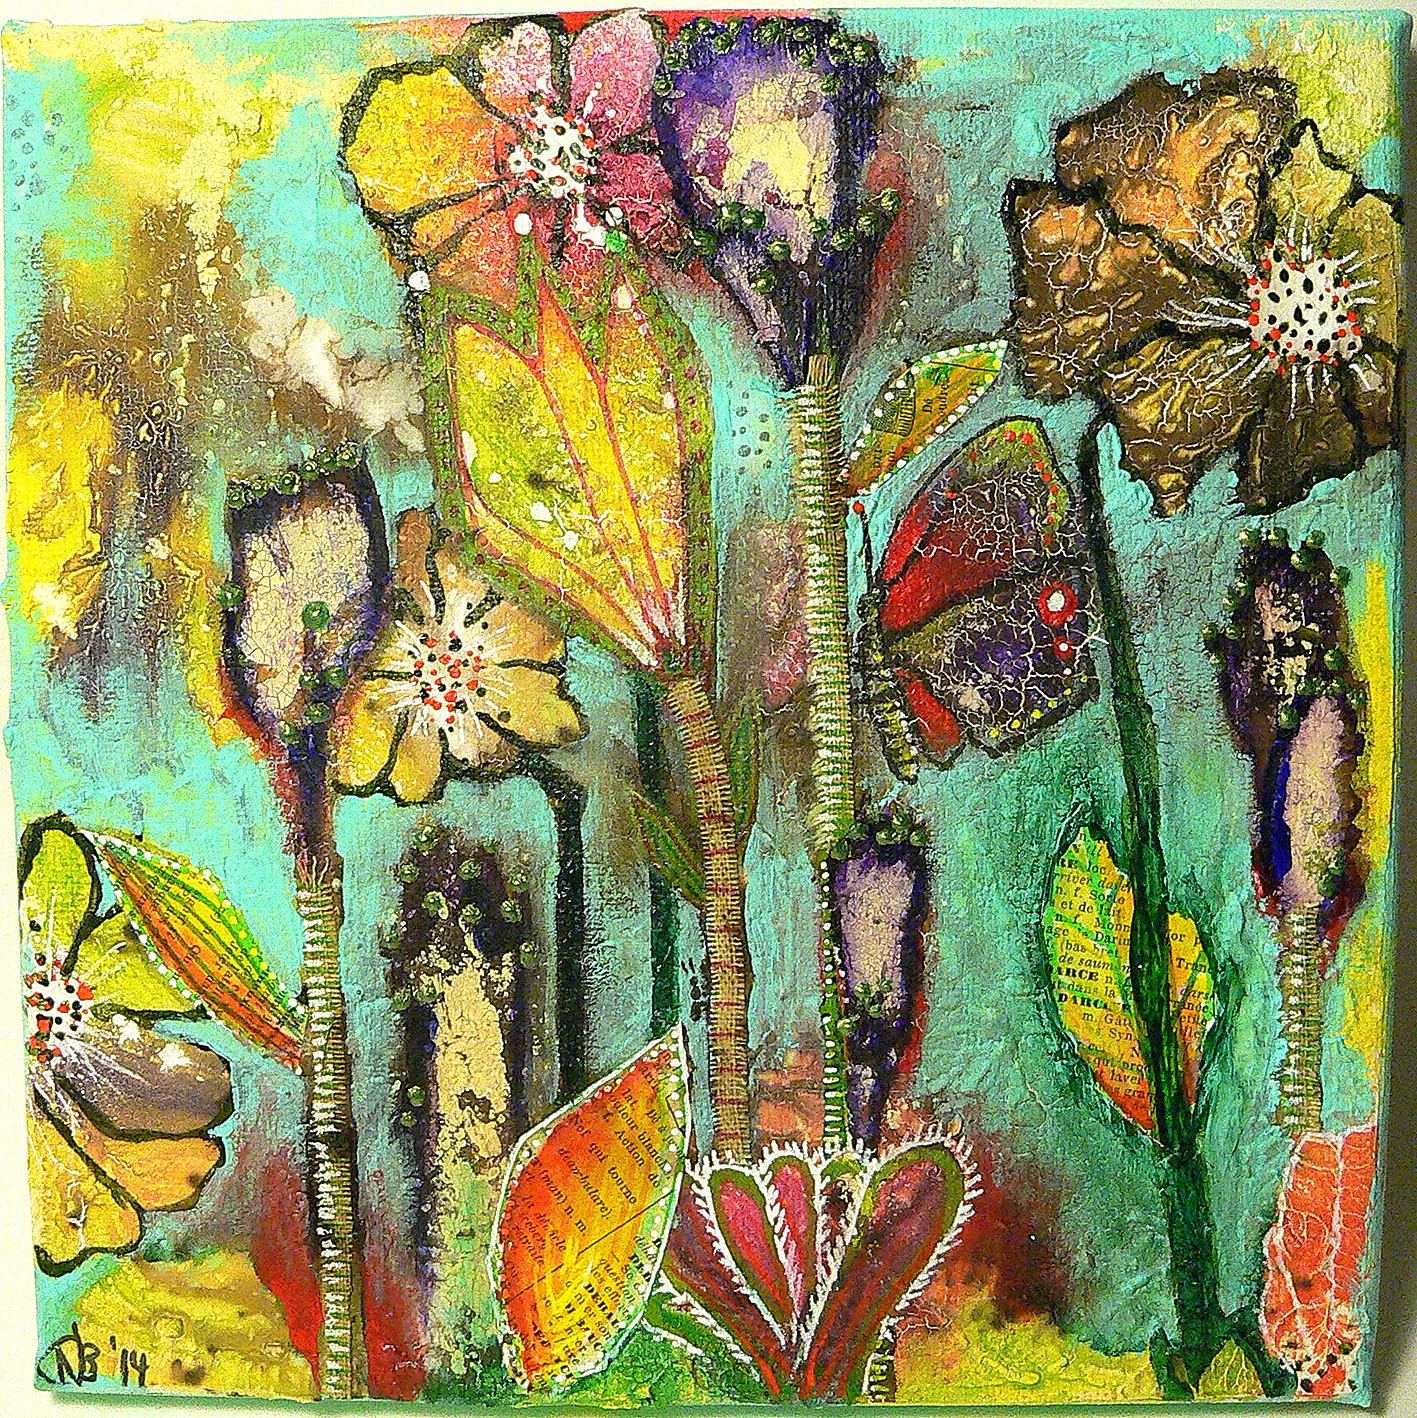 http://www.decoart.com/mixedmediablog/project/216/flowery_meadow_canvas